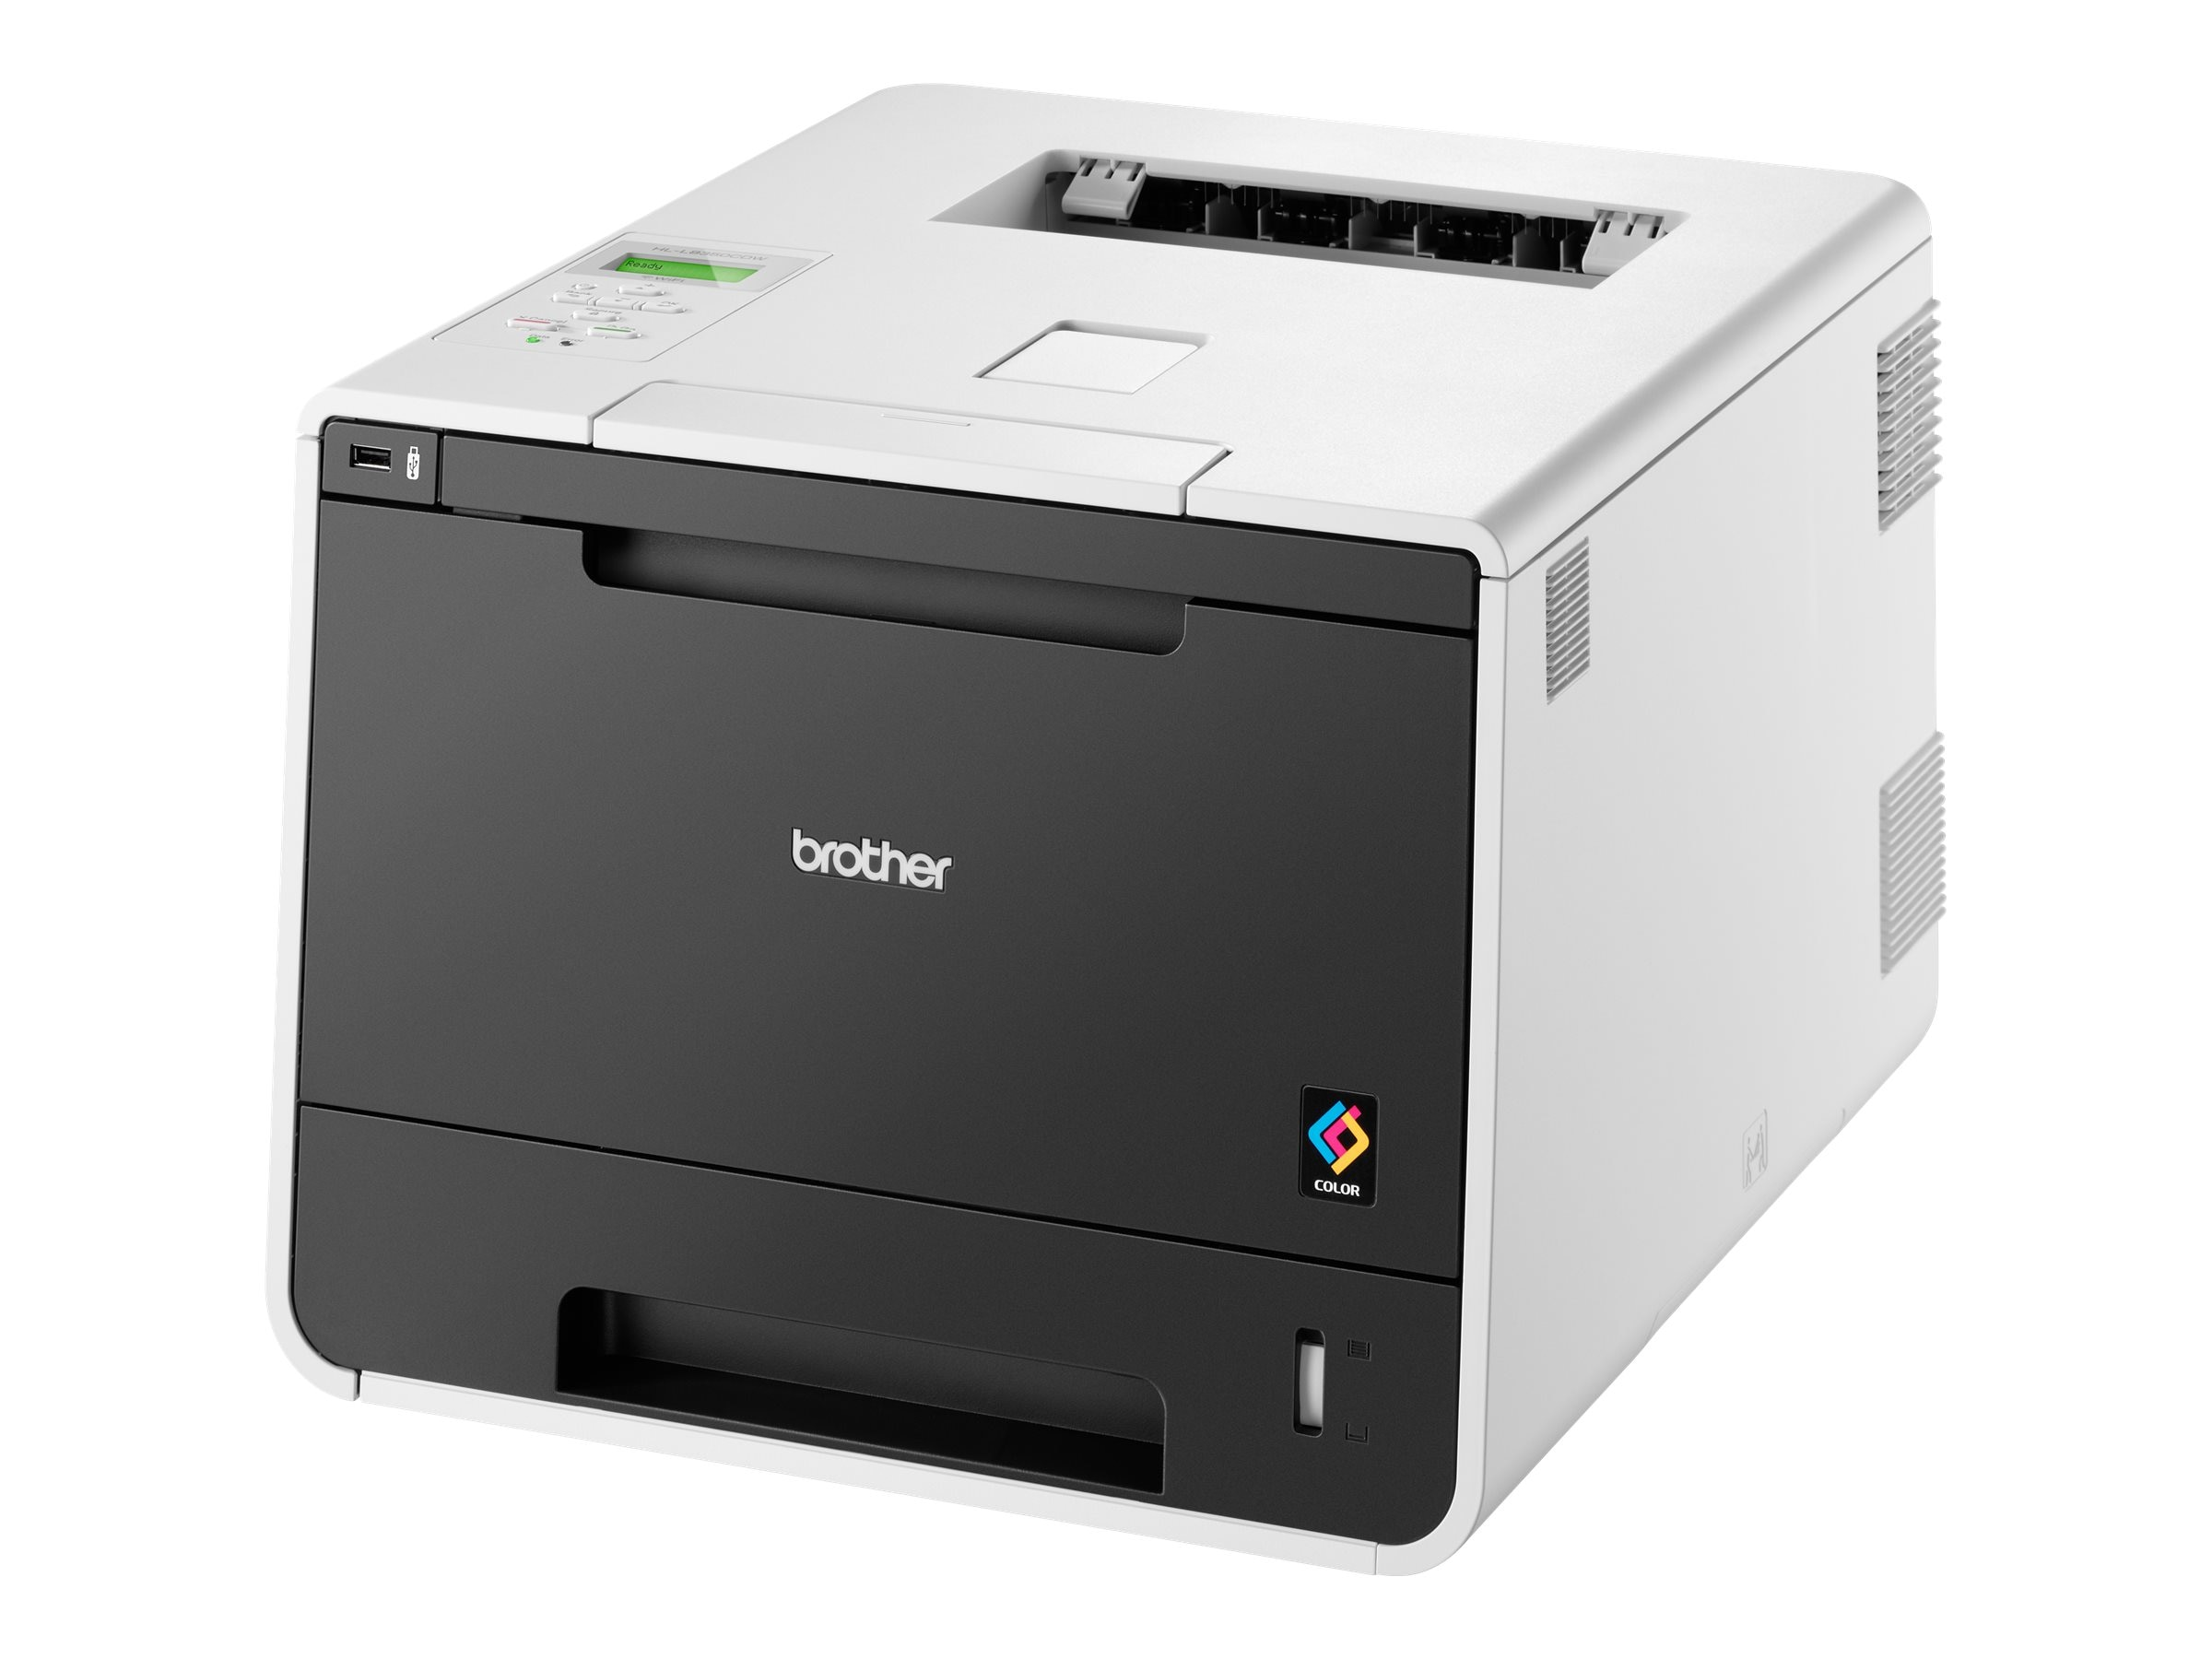 Brother HL-L8350CDW Image 2